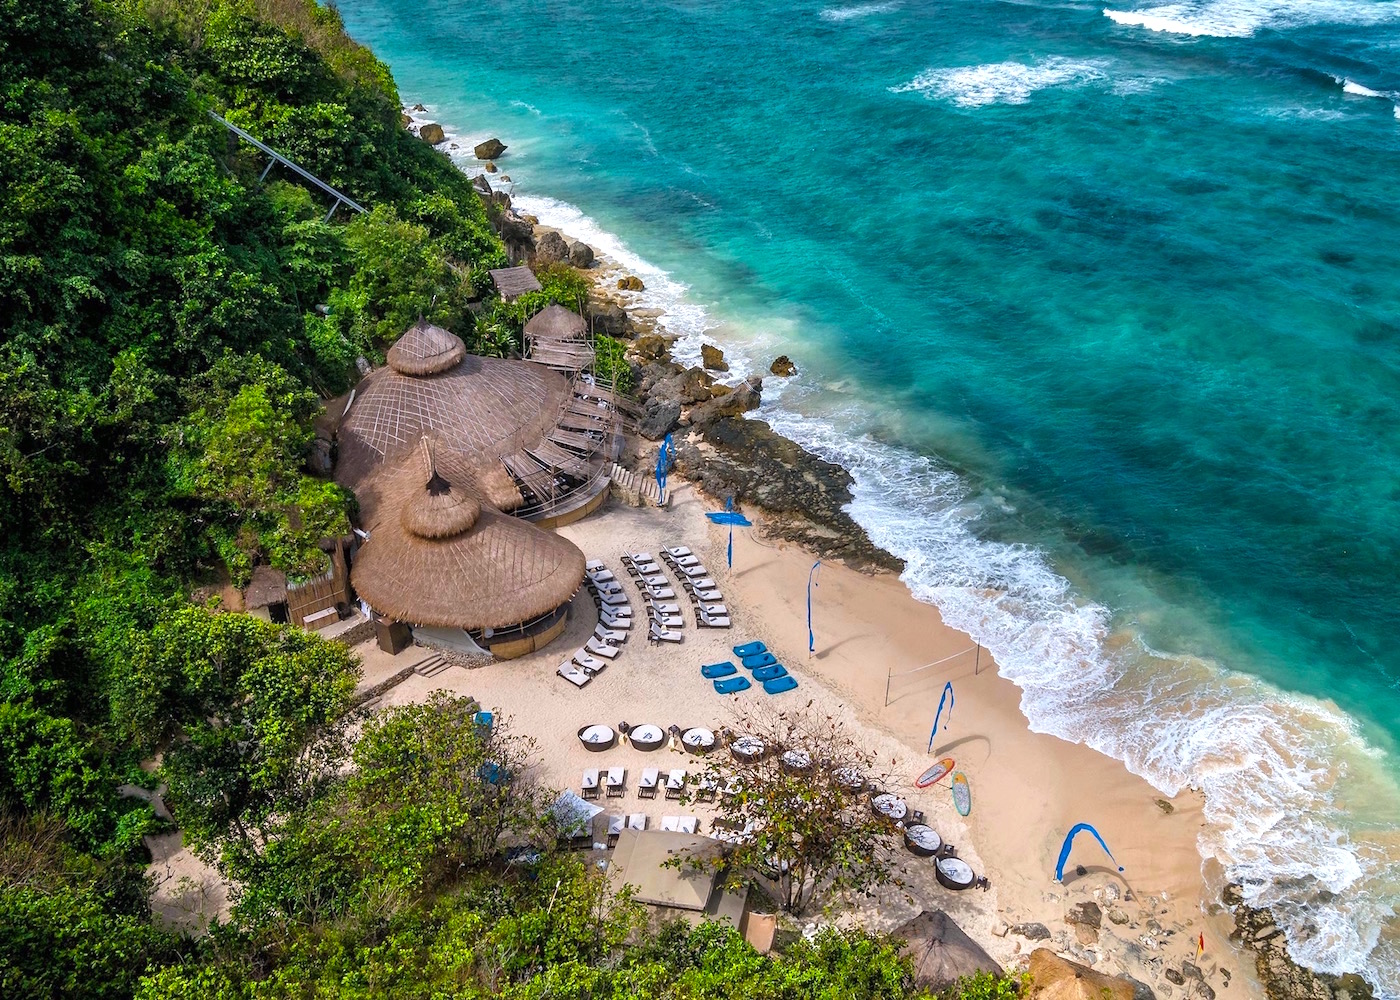 Aerial view of Karma Beach Club in Uluwatu, Bali, Indonesia